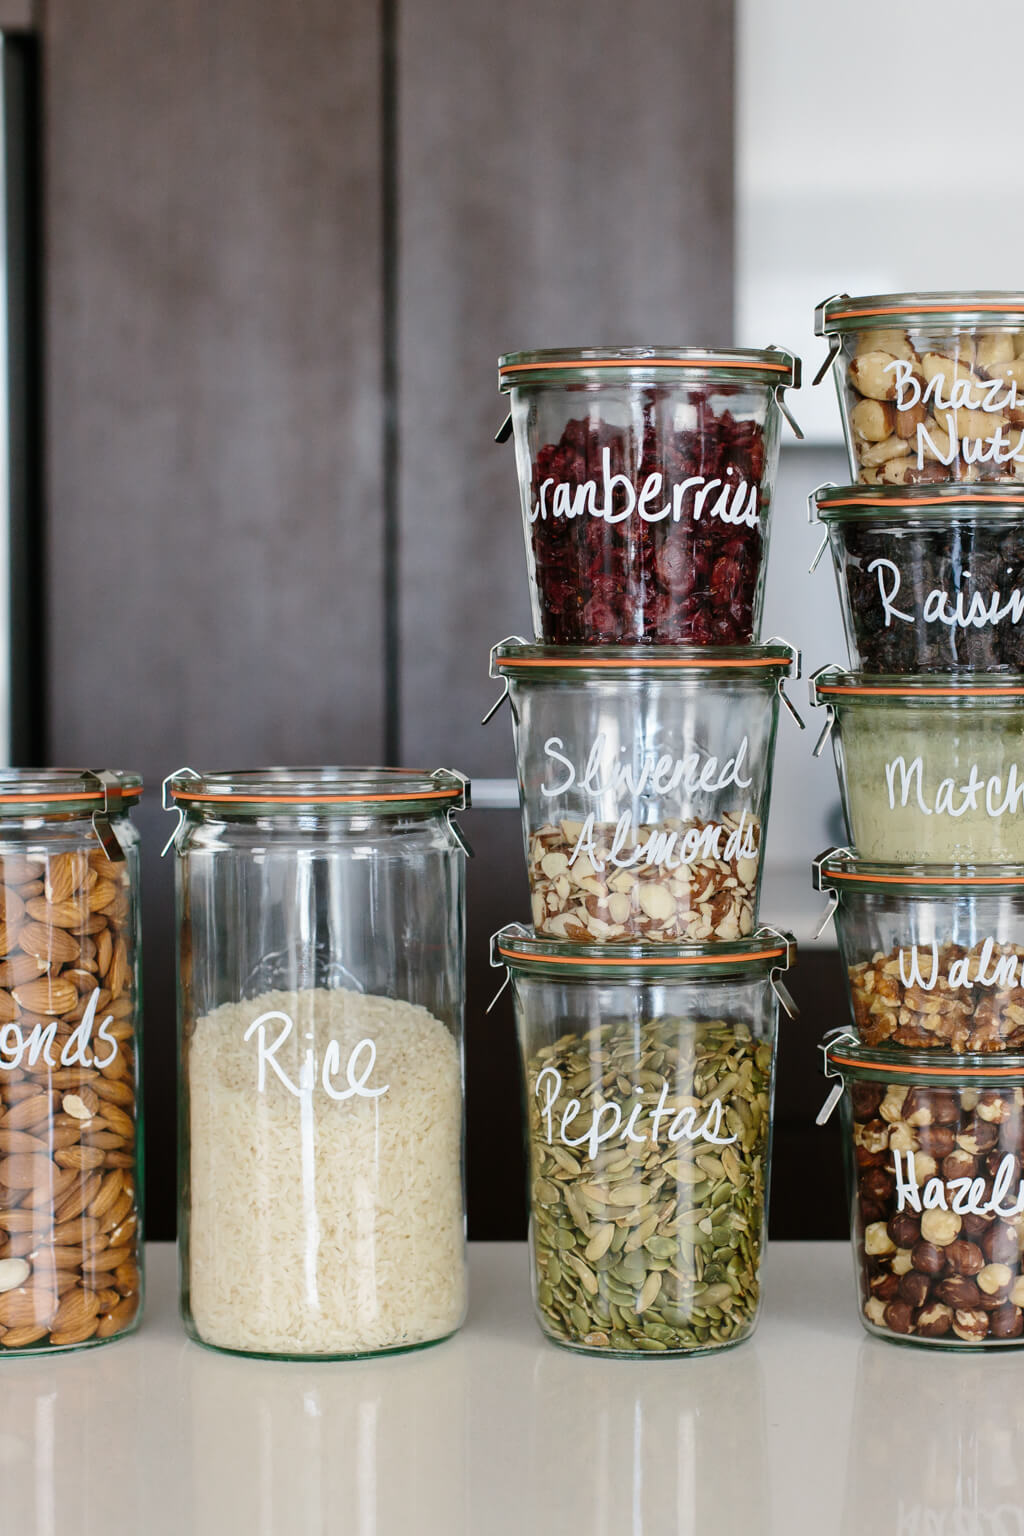 Genial Pantry Organization Ideas   Iu0027ve Got Several Tips For Creating A Healthy  Pantry And